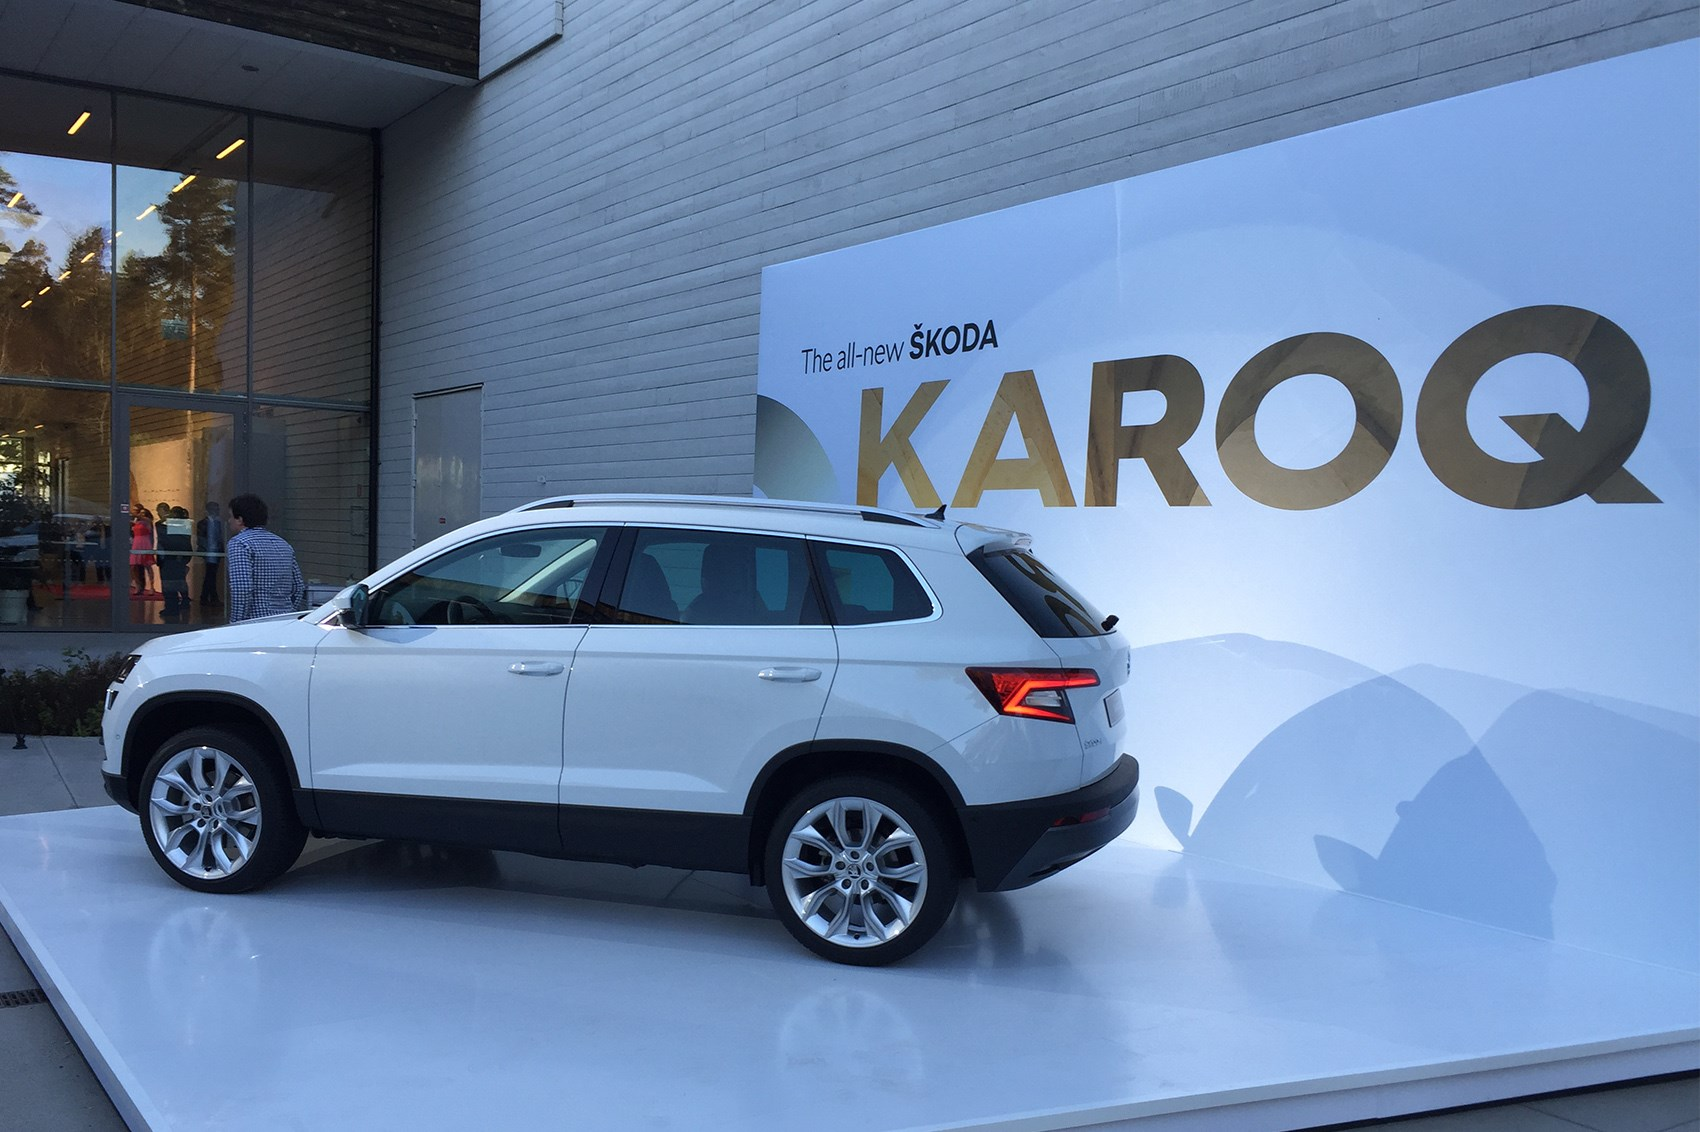 skoda karoq suv review summary parkers. Black Bedroom Furniture Sets. Home Design Ideas